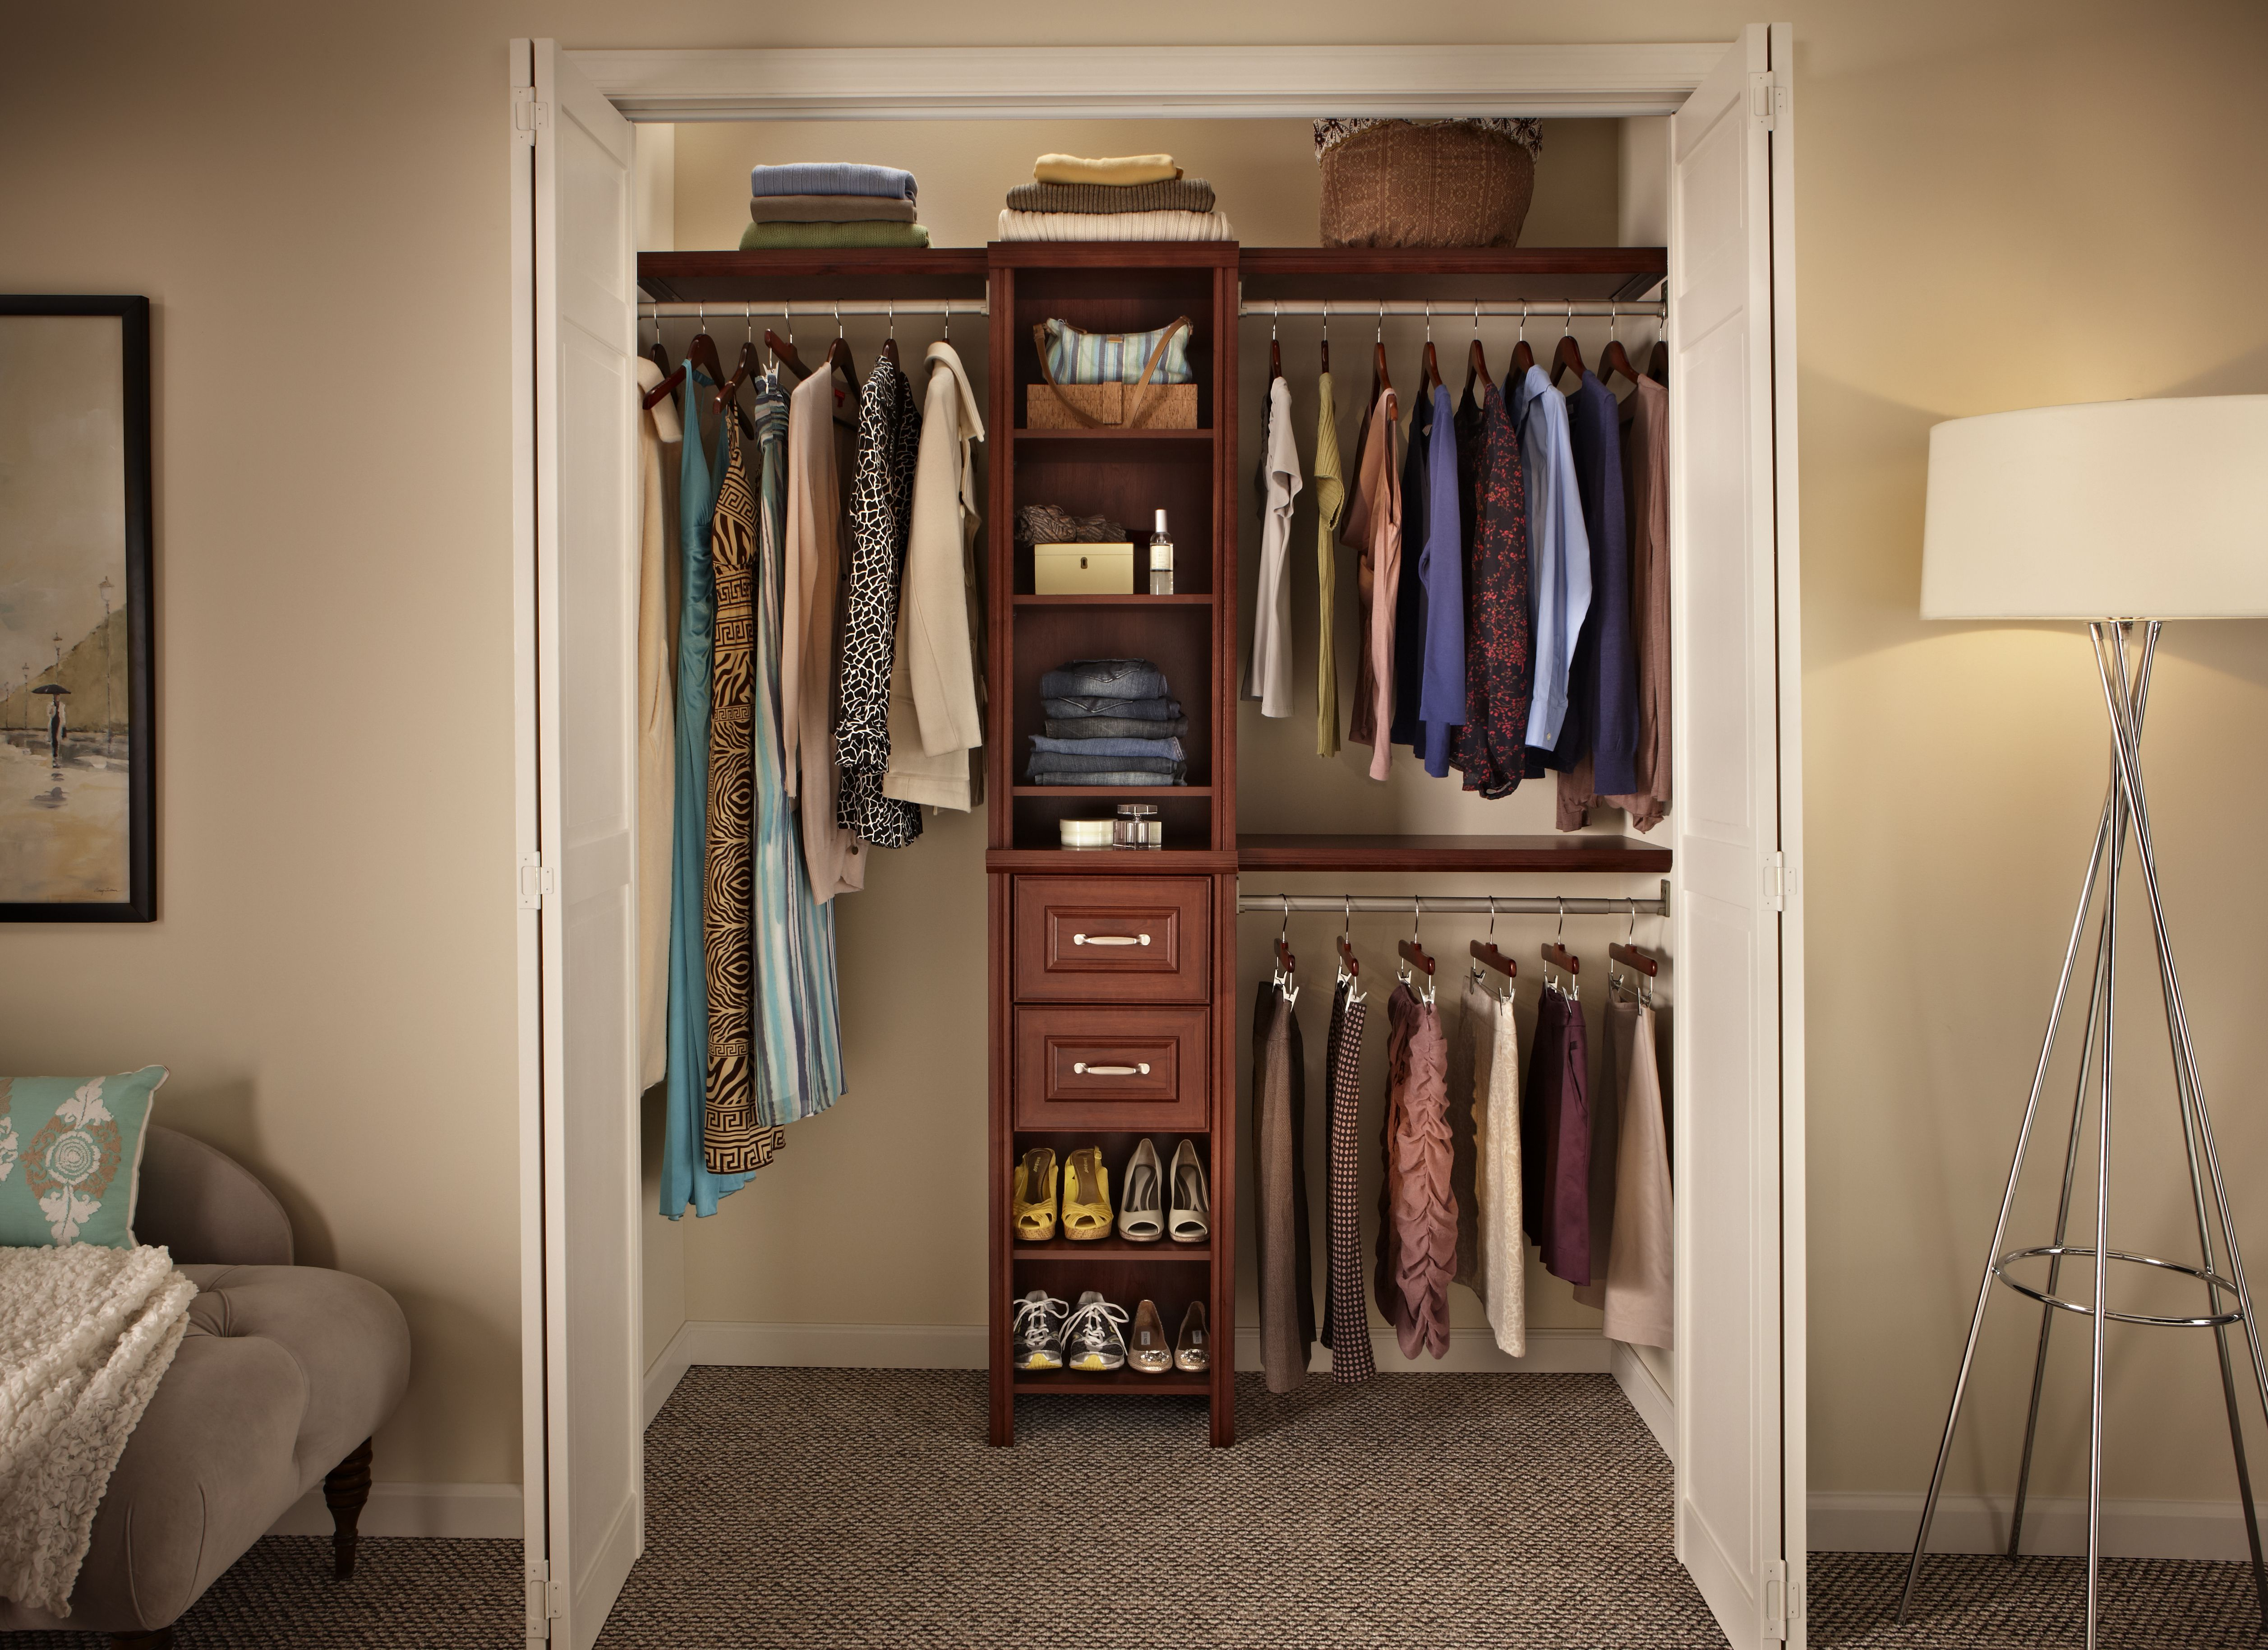 Brilliant Closet Organizer Ideas with Small Shoes Shelves and Drawers between Glossy Clothes Hangers